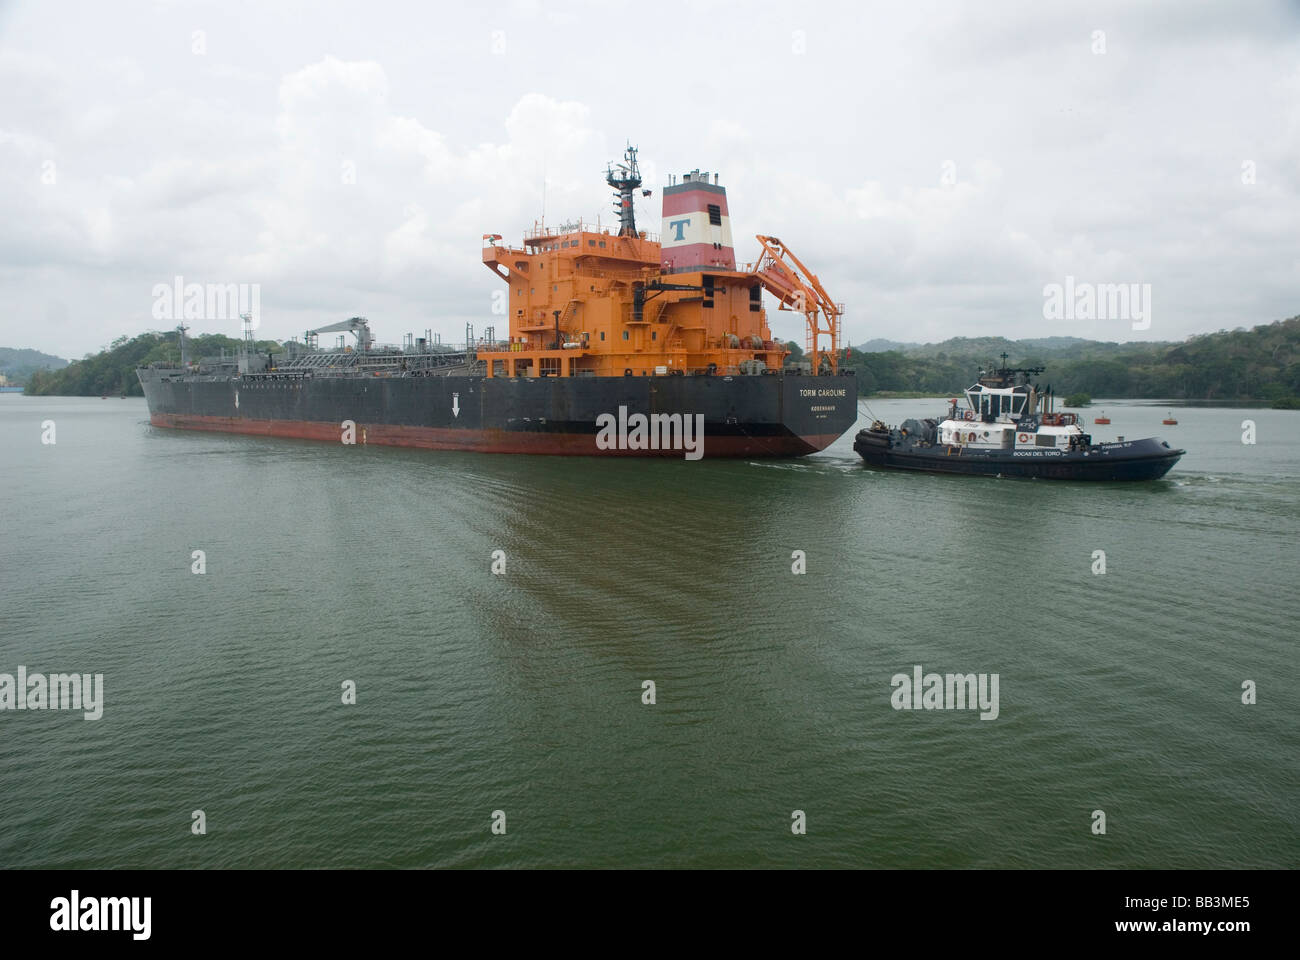 A cargo ship passing through Lake Gatun on the Panama Canal - Stock Image